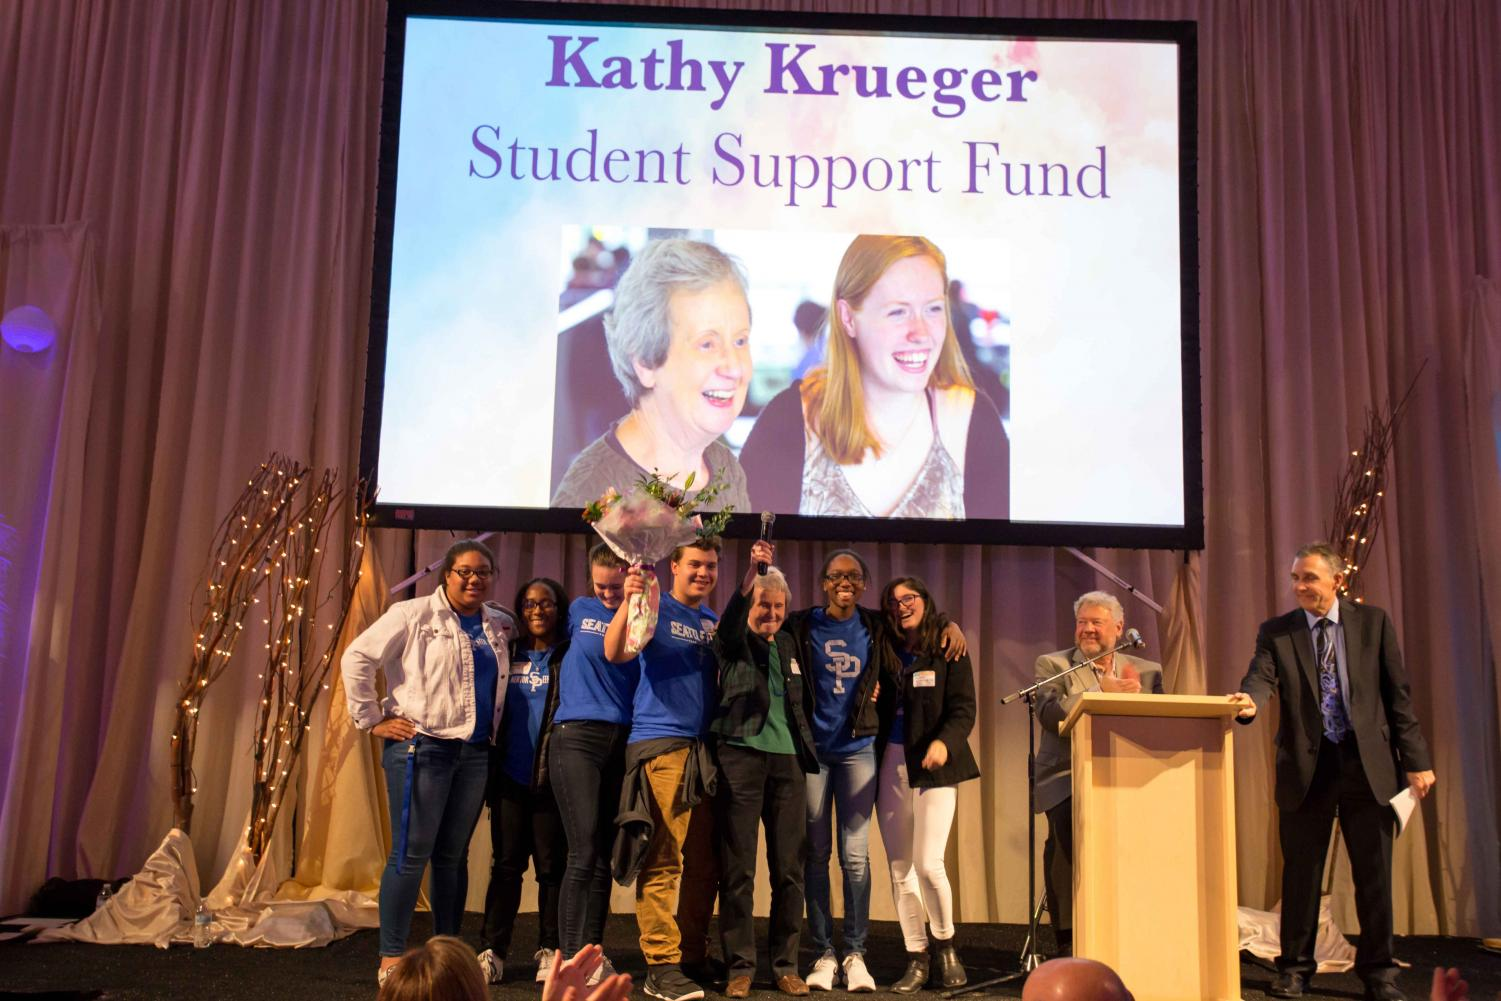 Mrs. Krueger celebrates the new Student Support Fund with students on stage at the auction. The fund is now named in Krueger's honor.